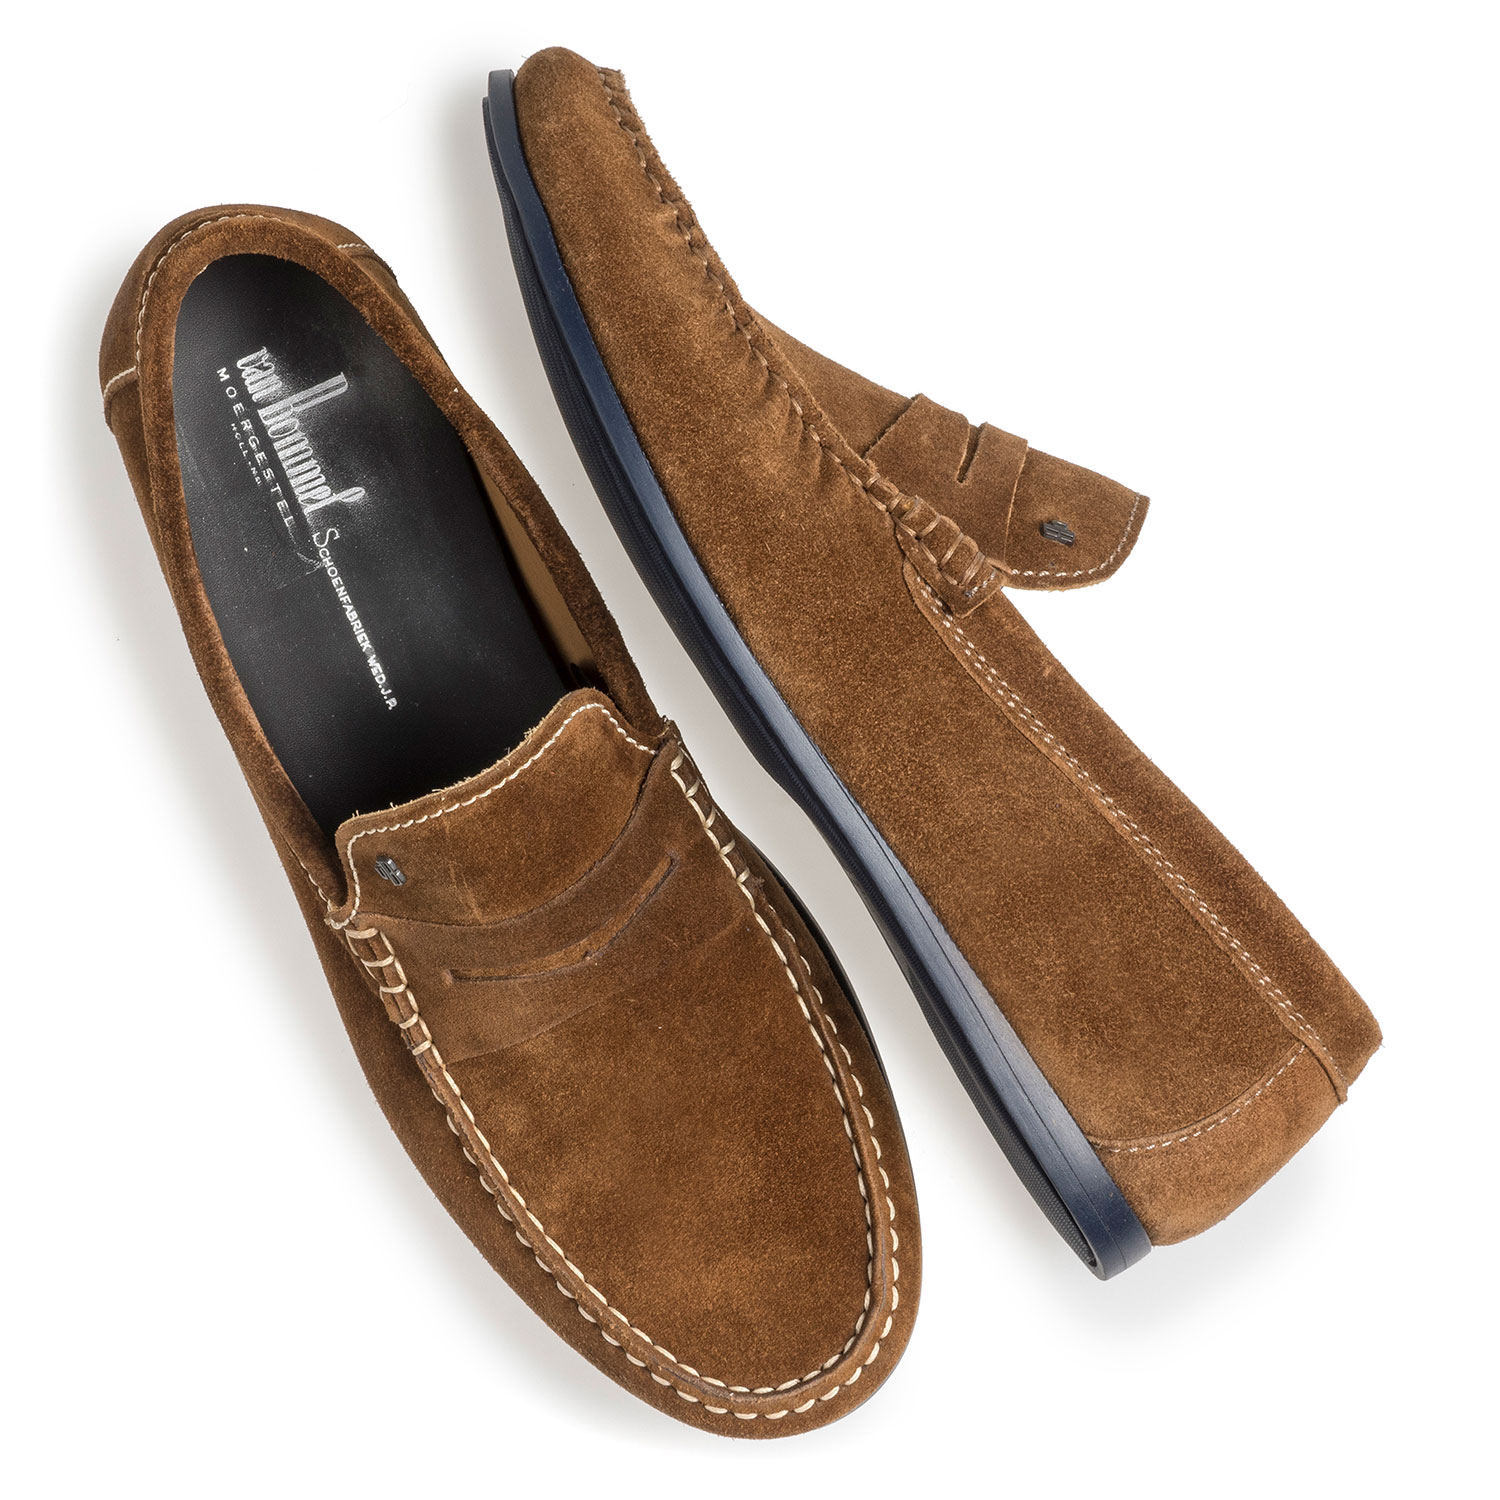 15038/02 - Brauner Wildleder-Loafer